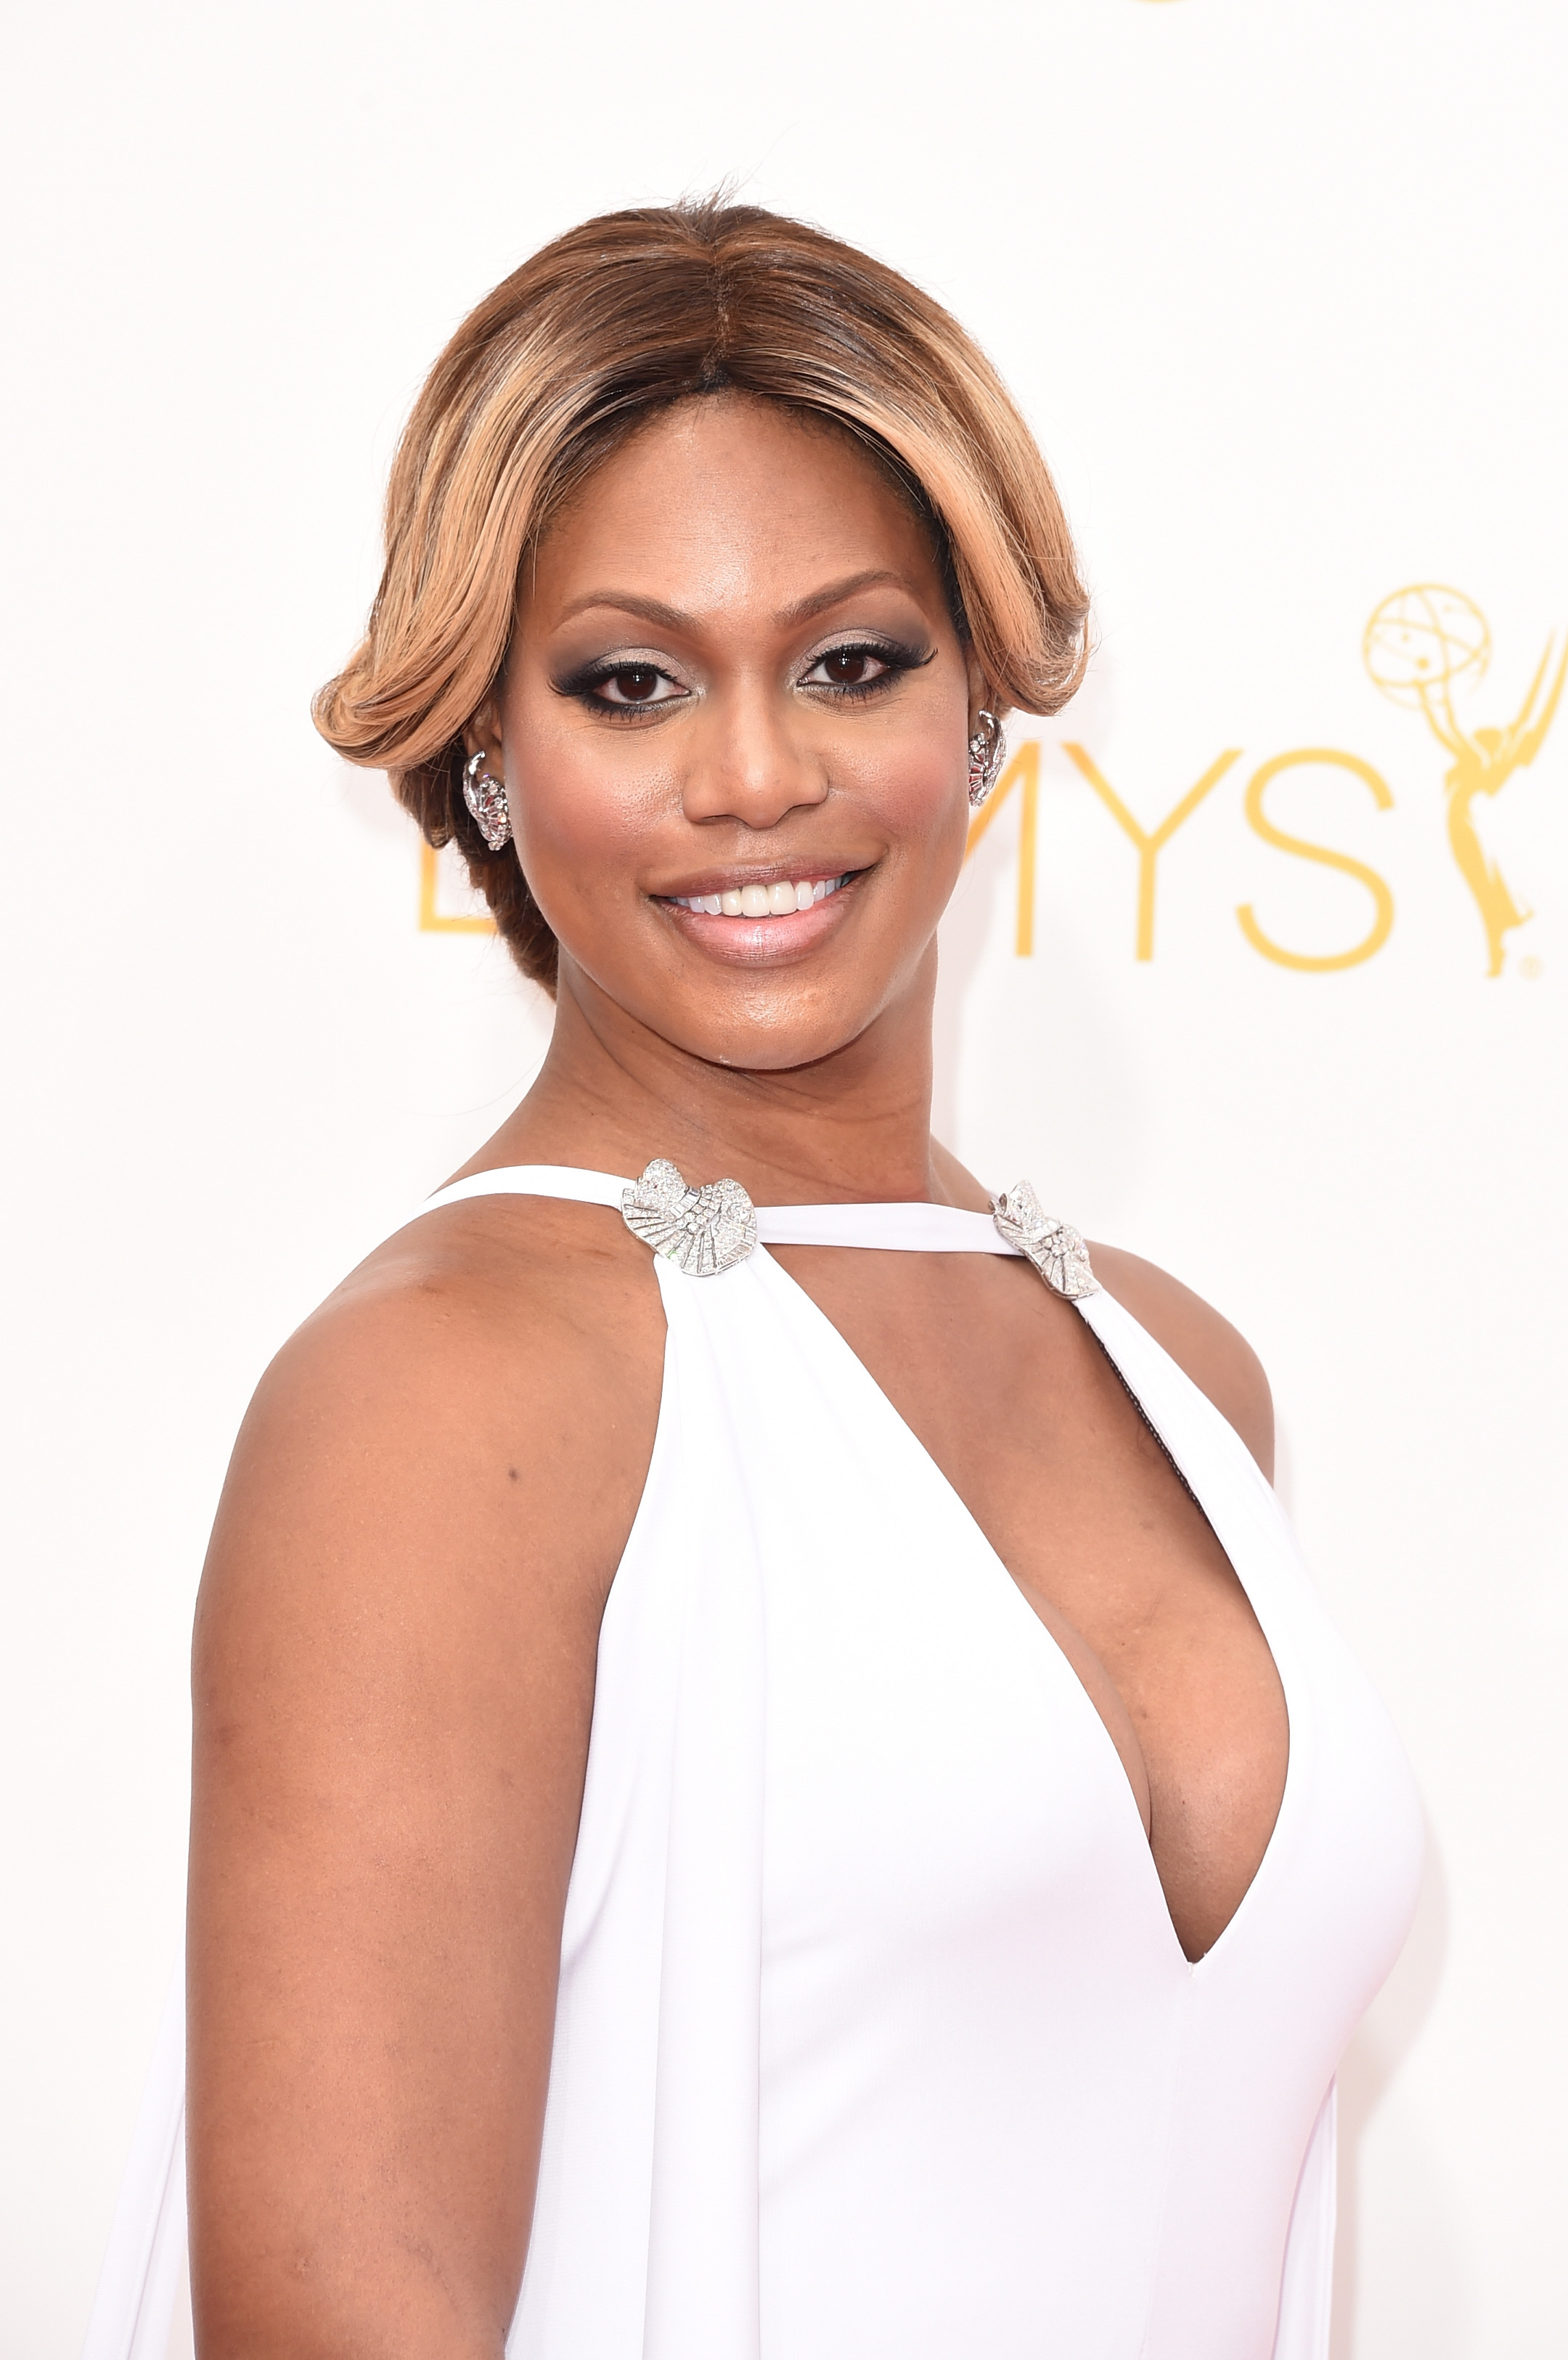 Actress Laverne Cox attends the 66th Annual Primetime Emmy Awards held at Nokia Theatre L.A. Live on Aug. 25, 2014 in Los Angeles.